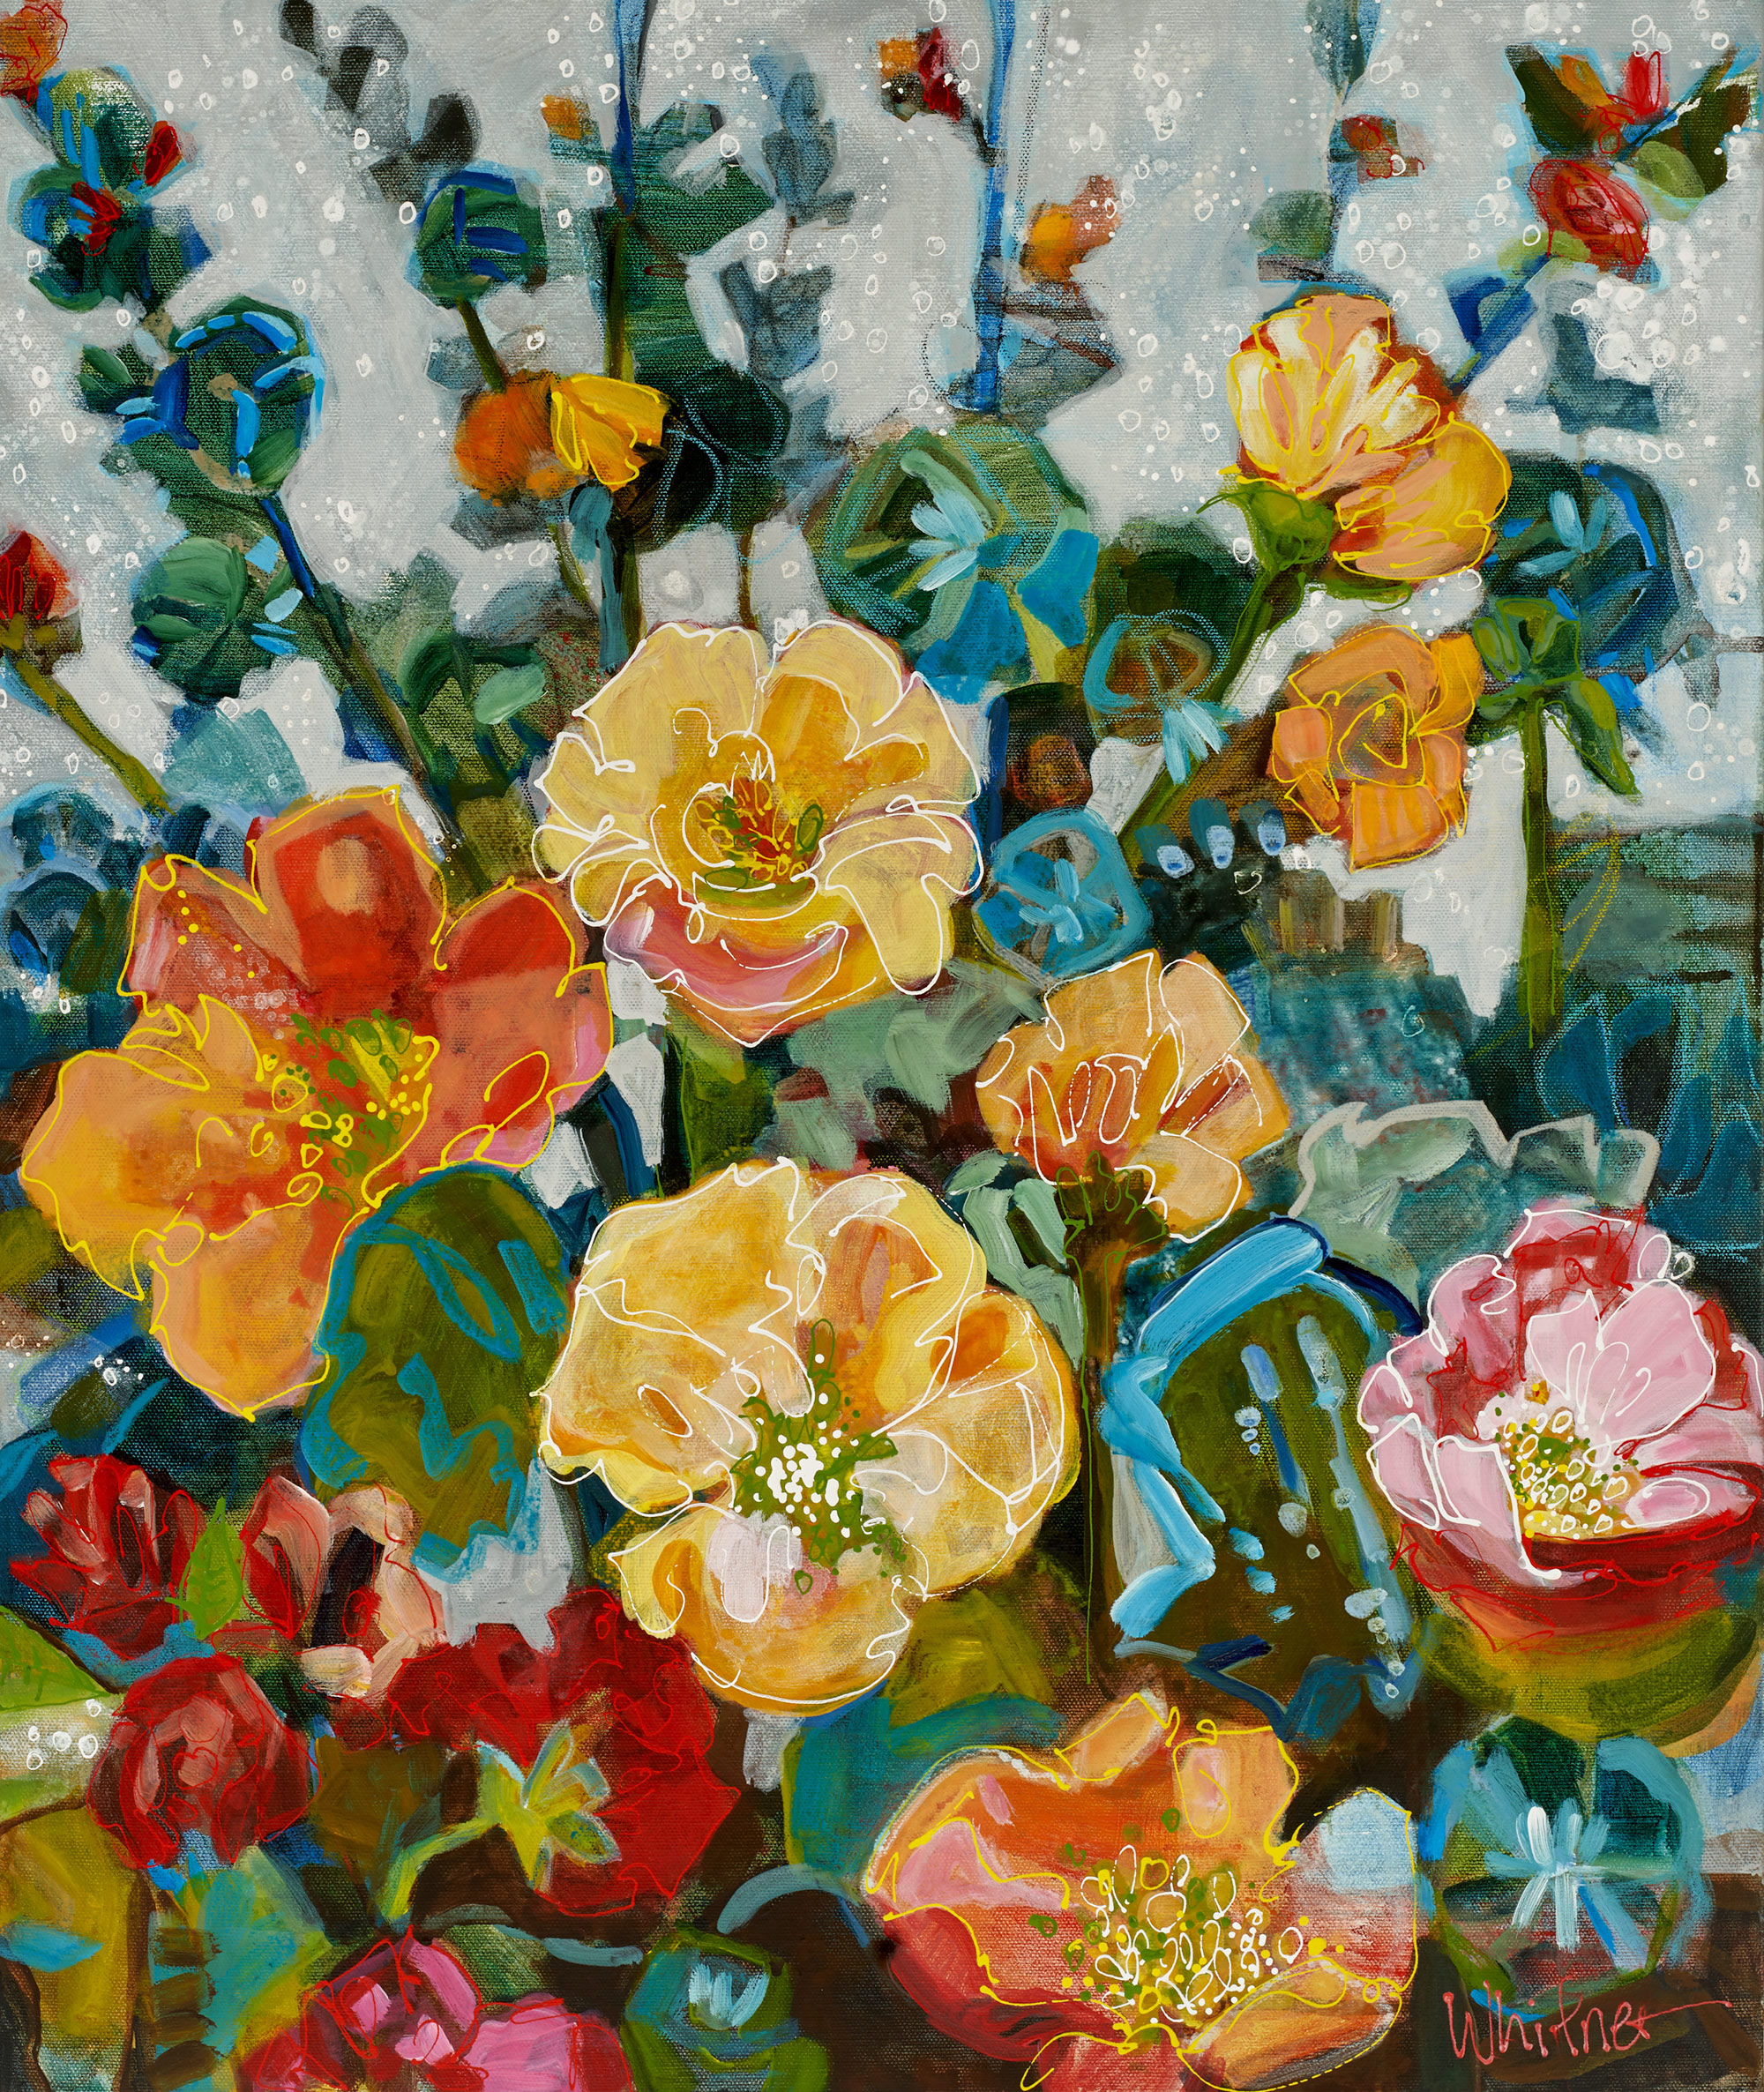 Lance-Whitner-Hollyhocks-24X20-Canvas-Web available at sundancecatalog.com